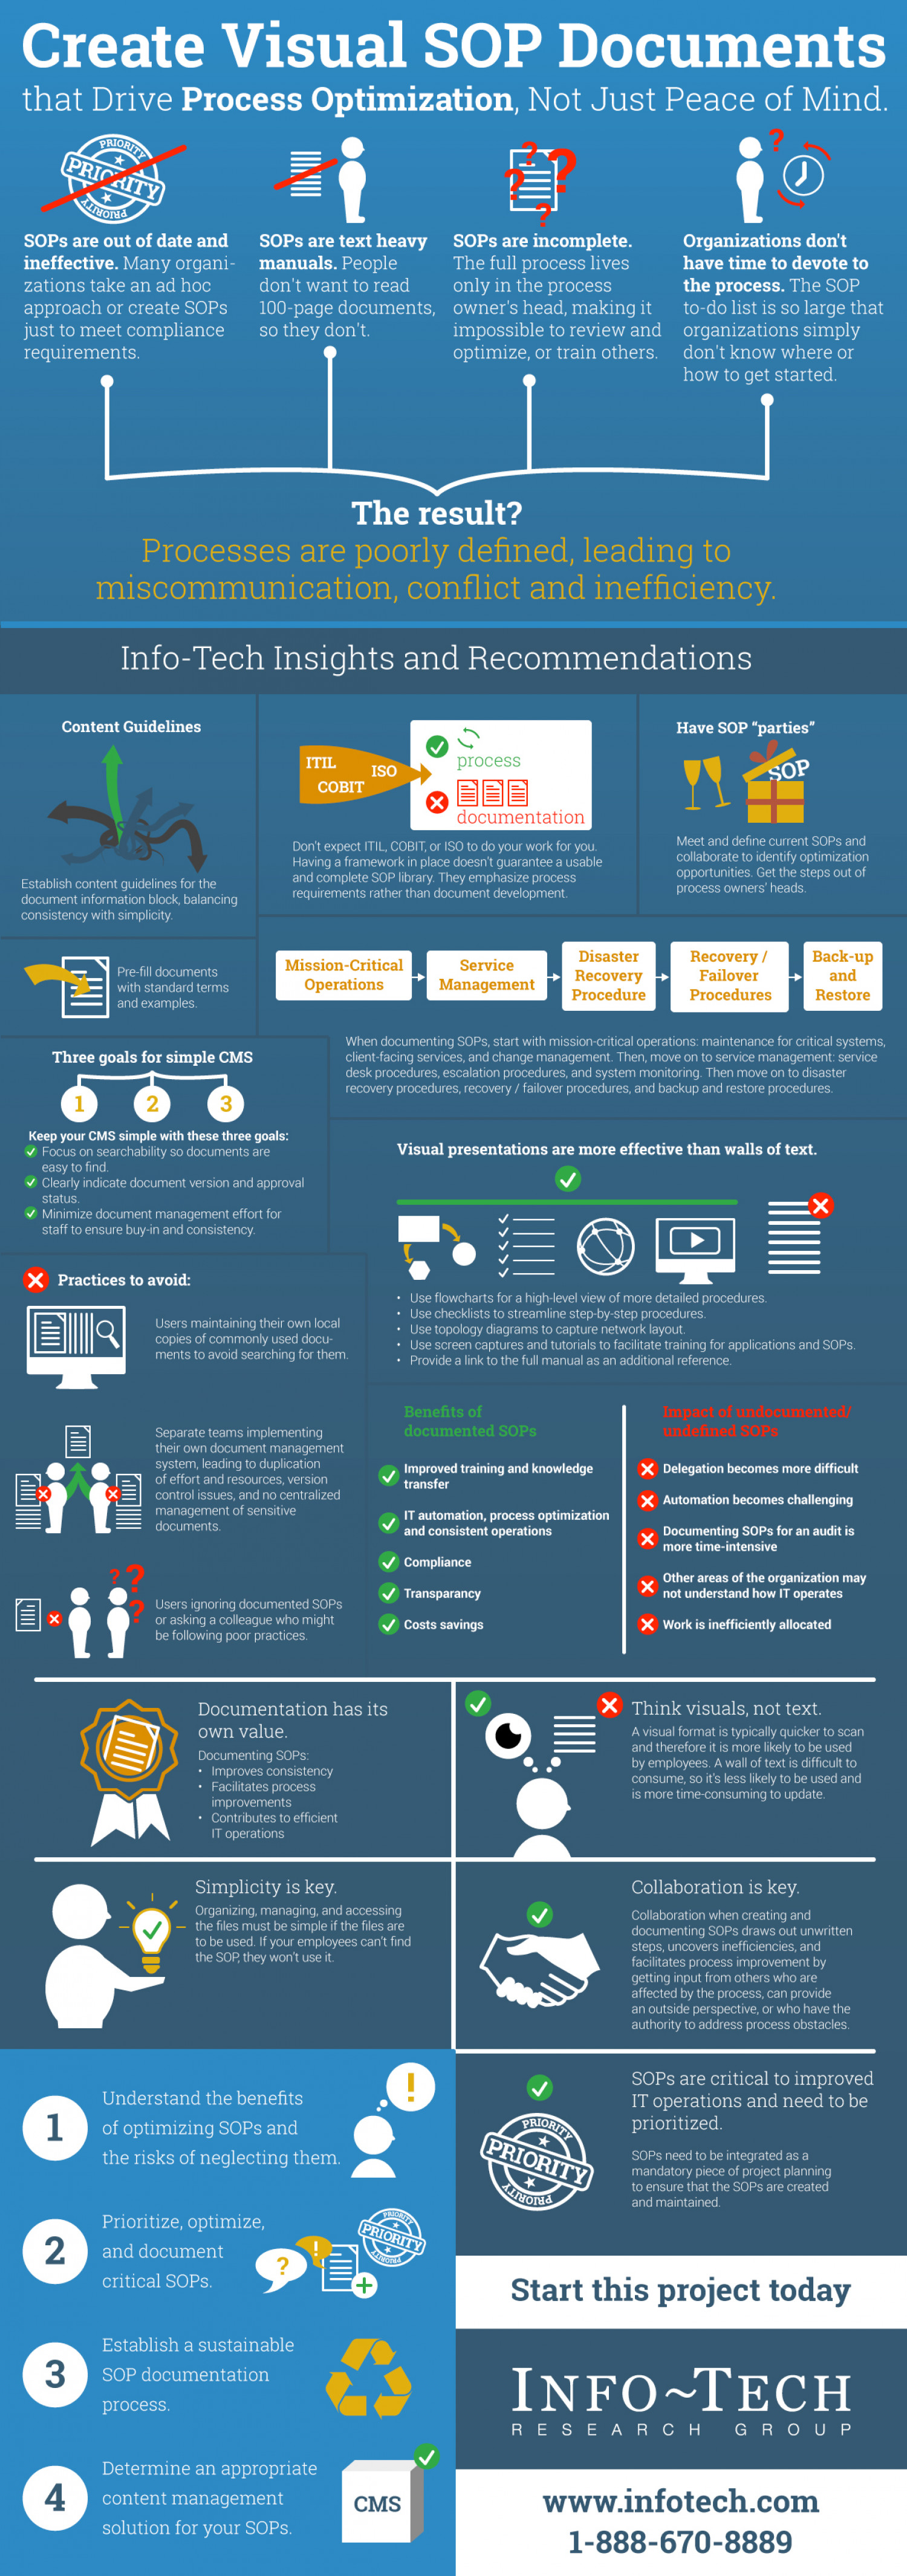 Create Visual SOP Documents Infographic